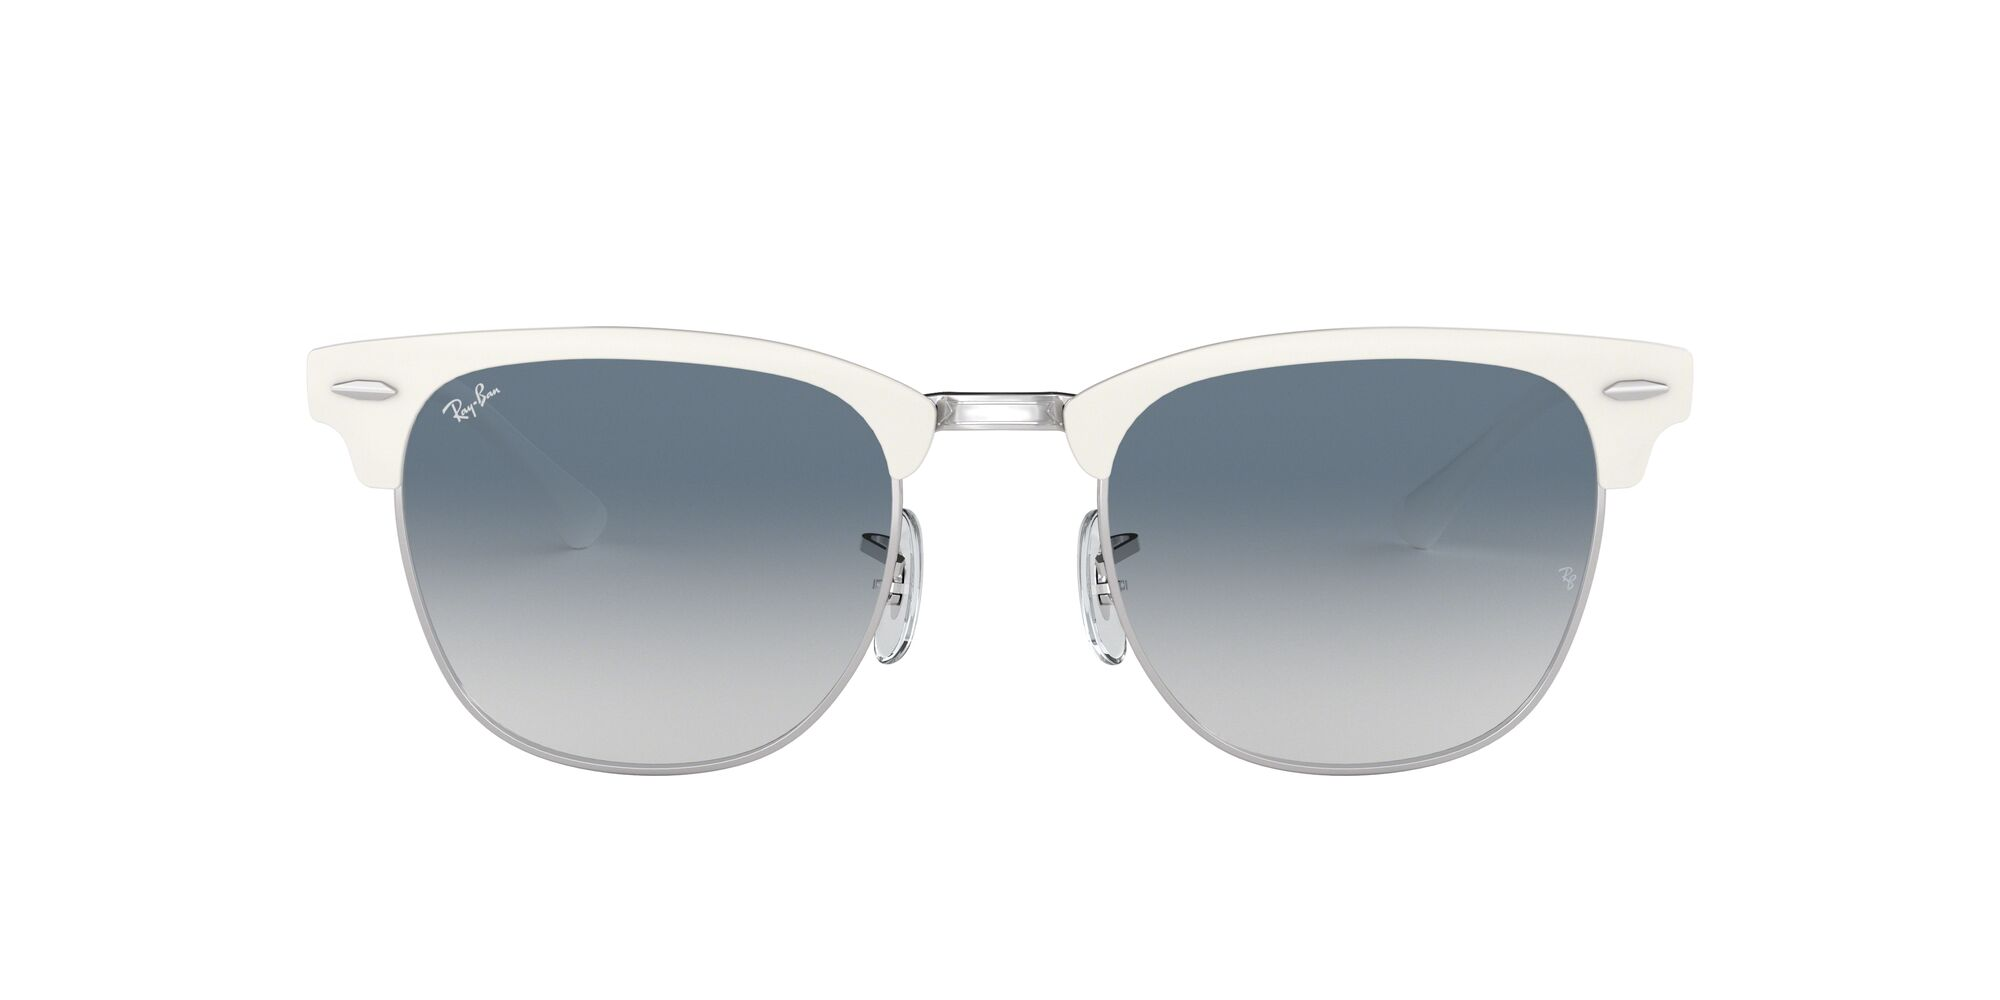 Front Ray-Ban Ray-Ban 0RB3716 90883F 51/21 Zilver/Blauw